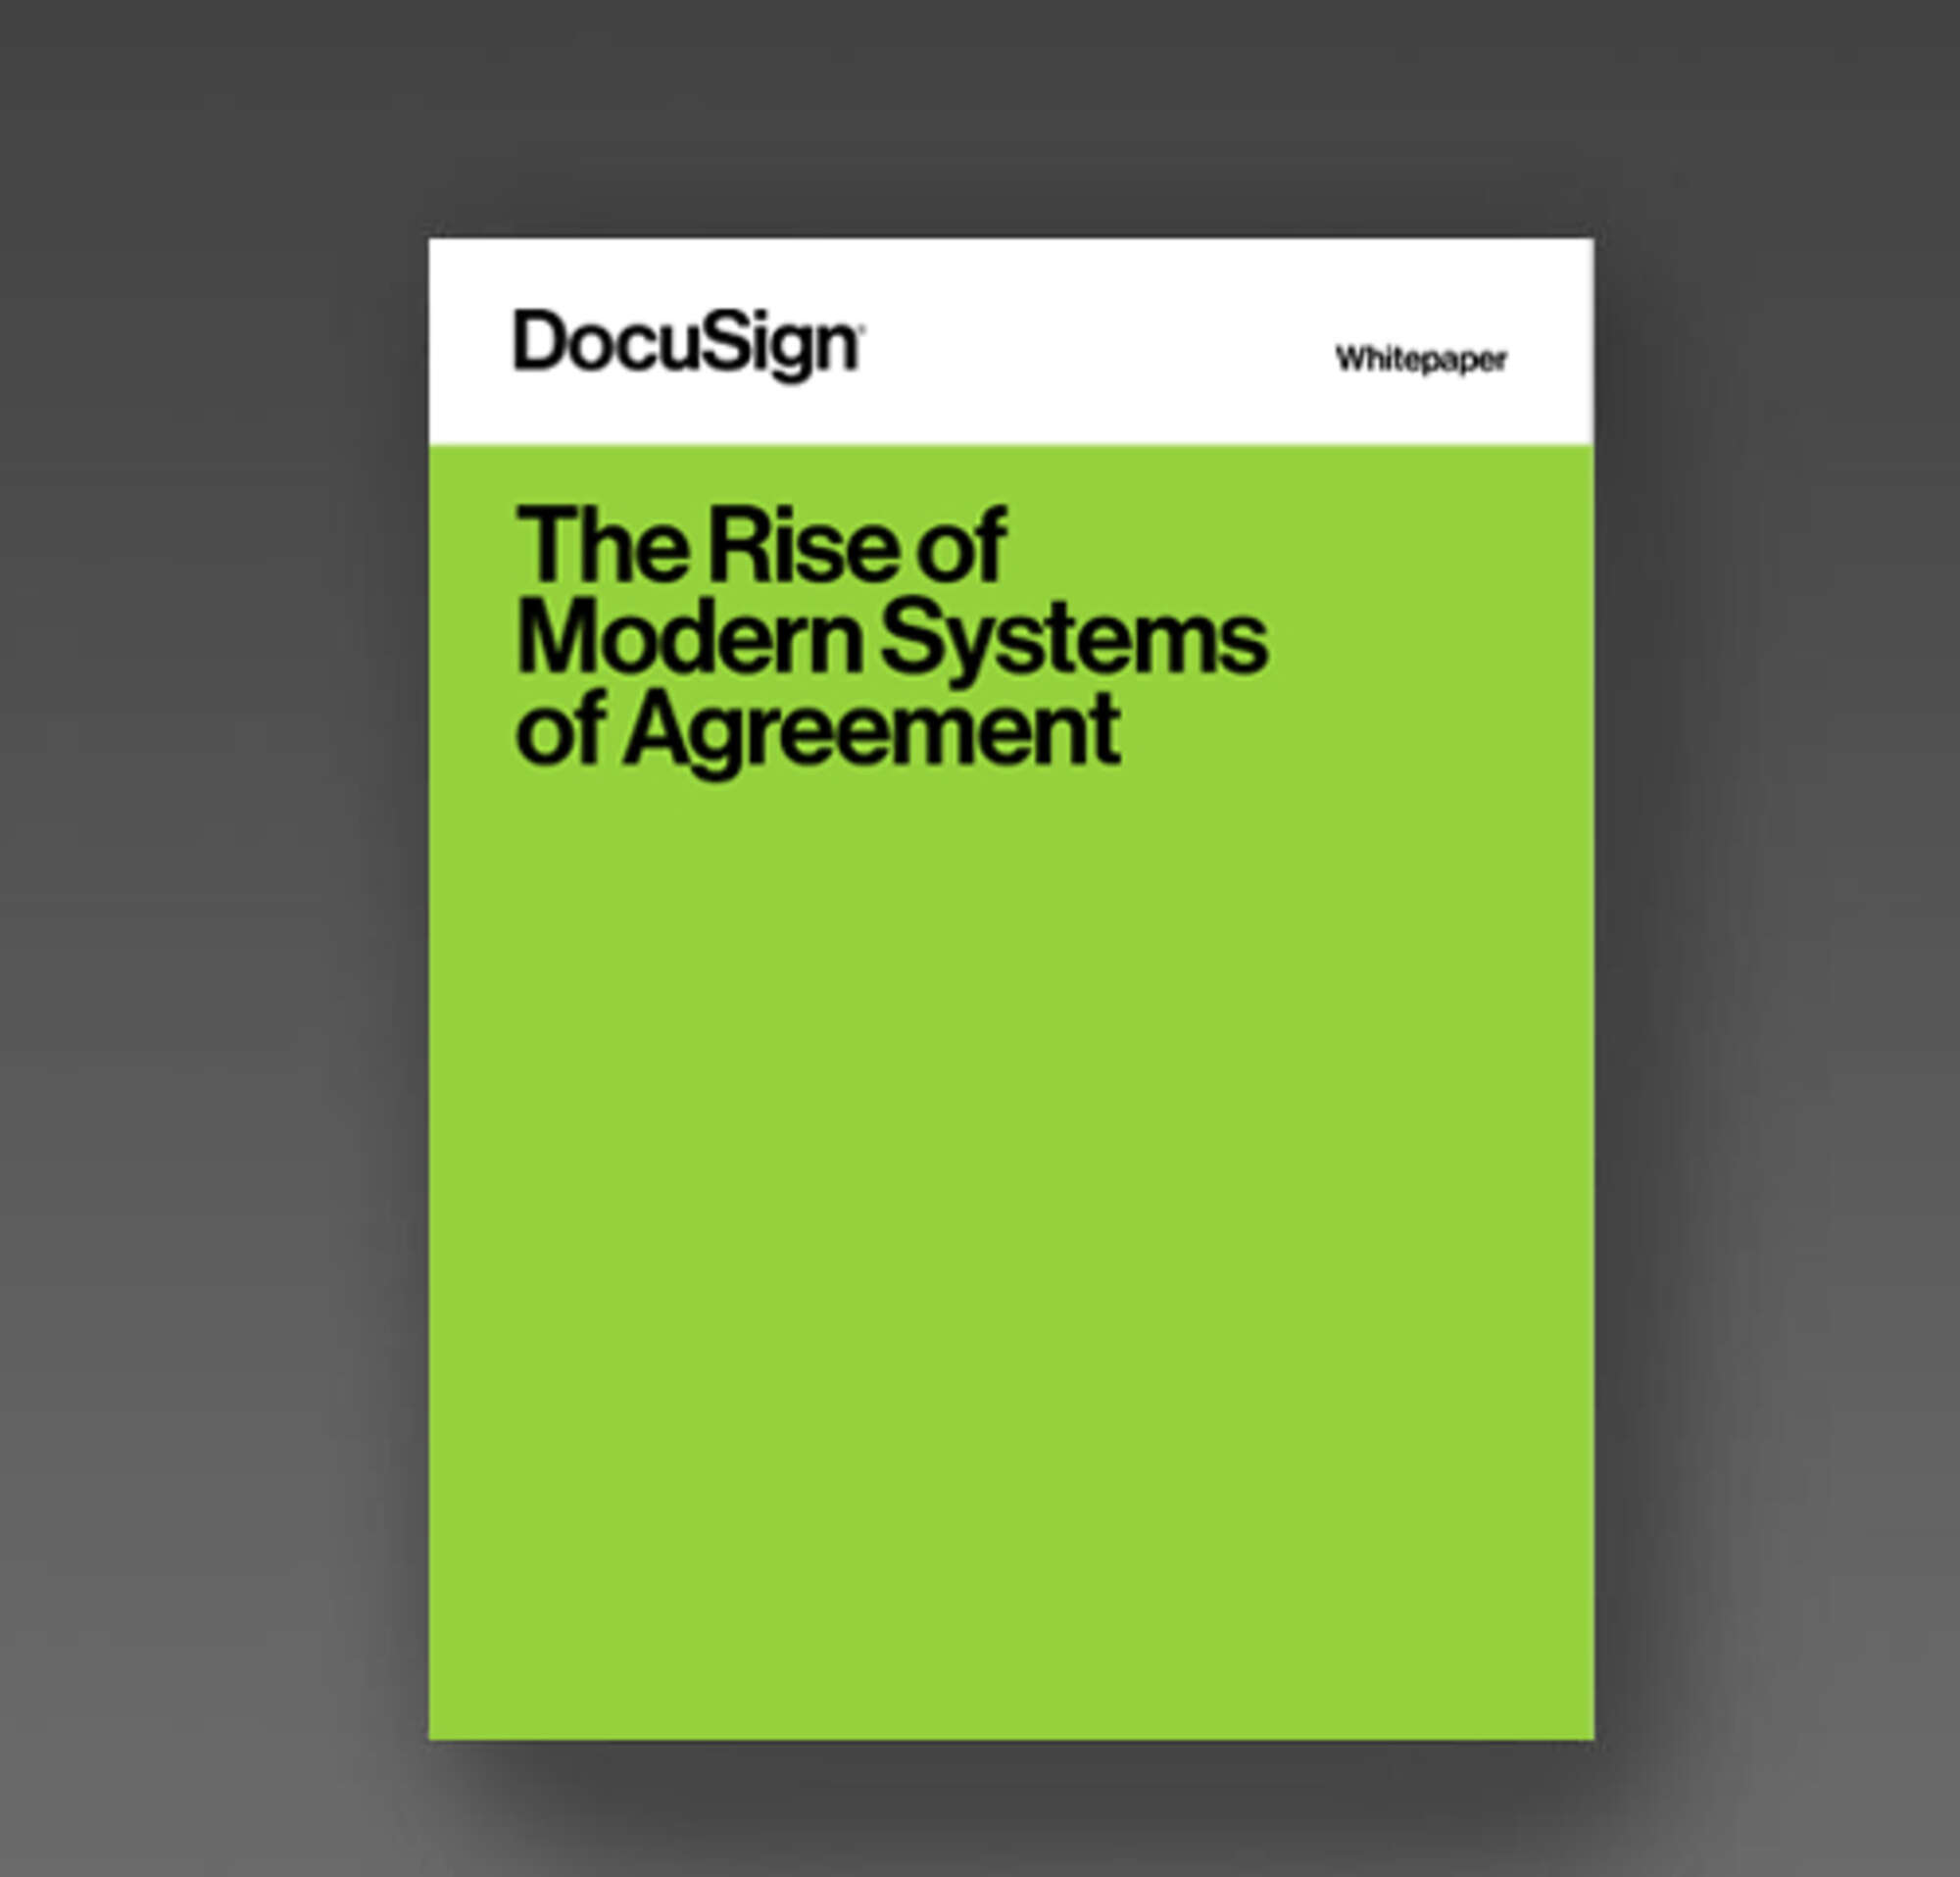 Download the Rise of Modern Systems of Agreement whitepaper